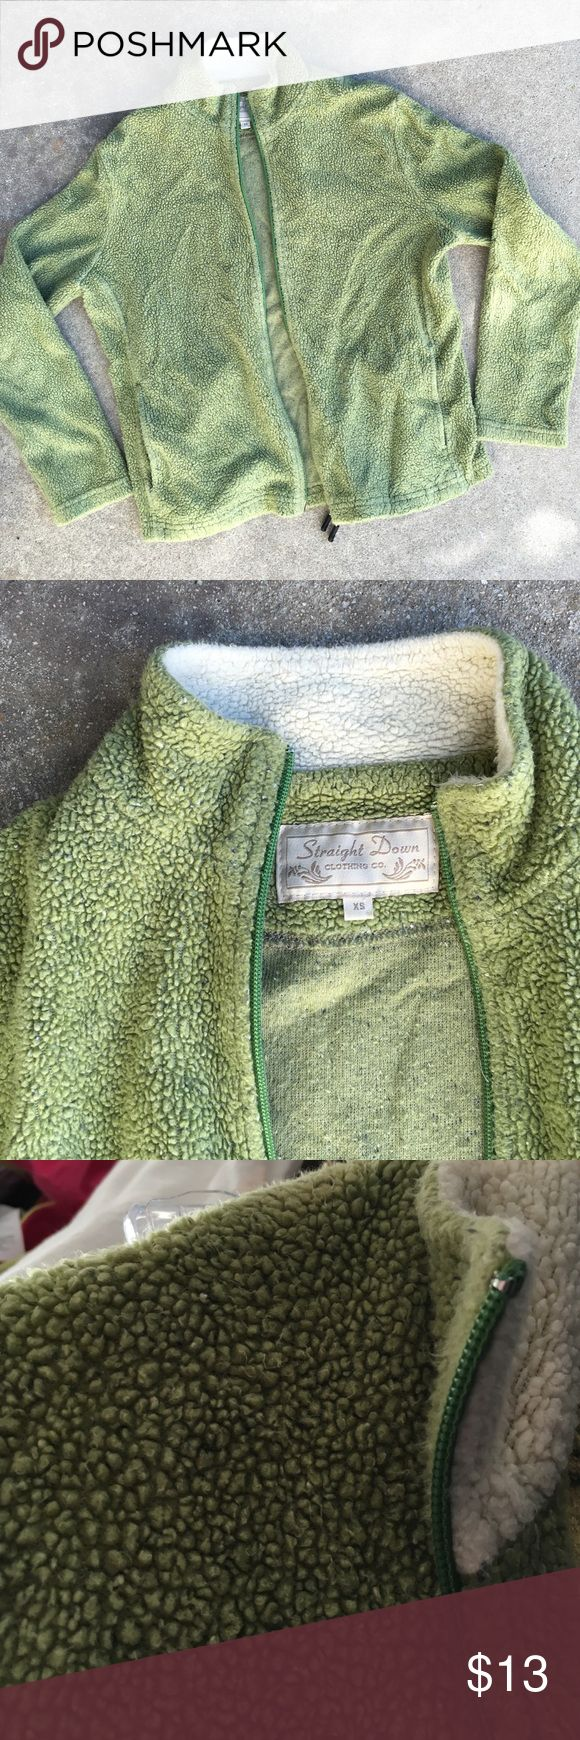 green zip up jacket Green jacket with white collar. Two front pockets. Size XSMALL Jackets & Coats